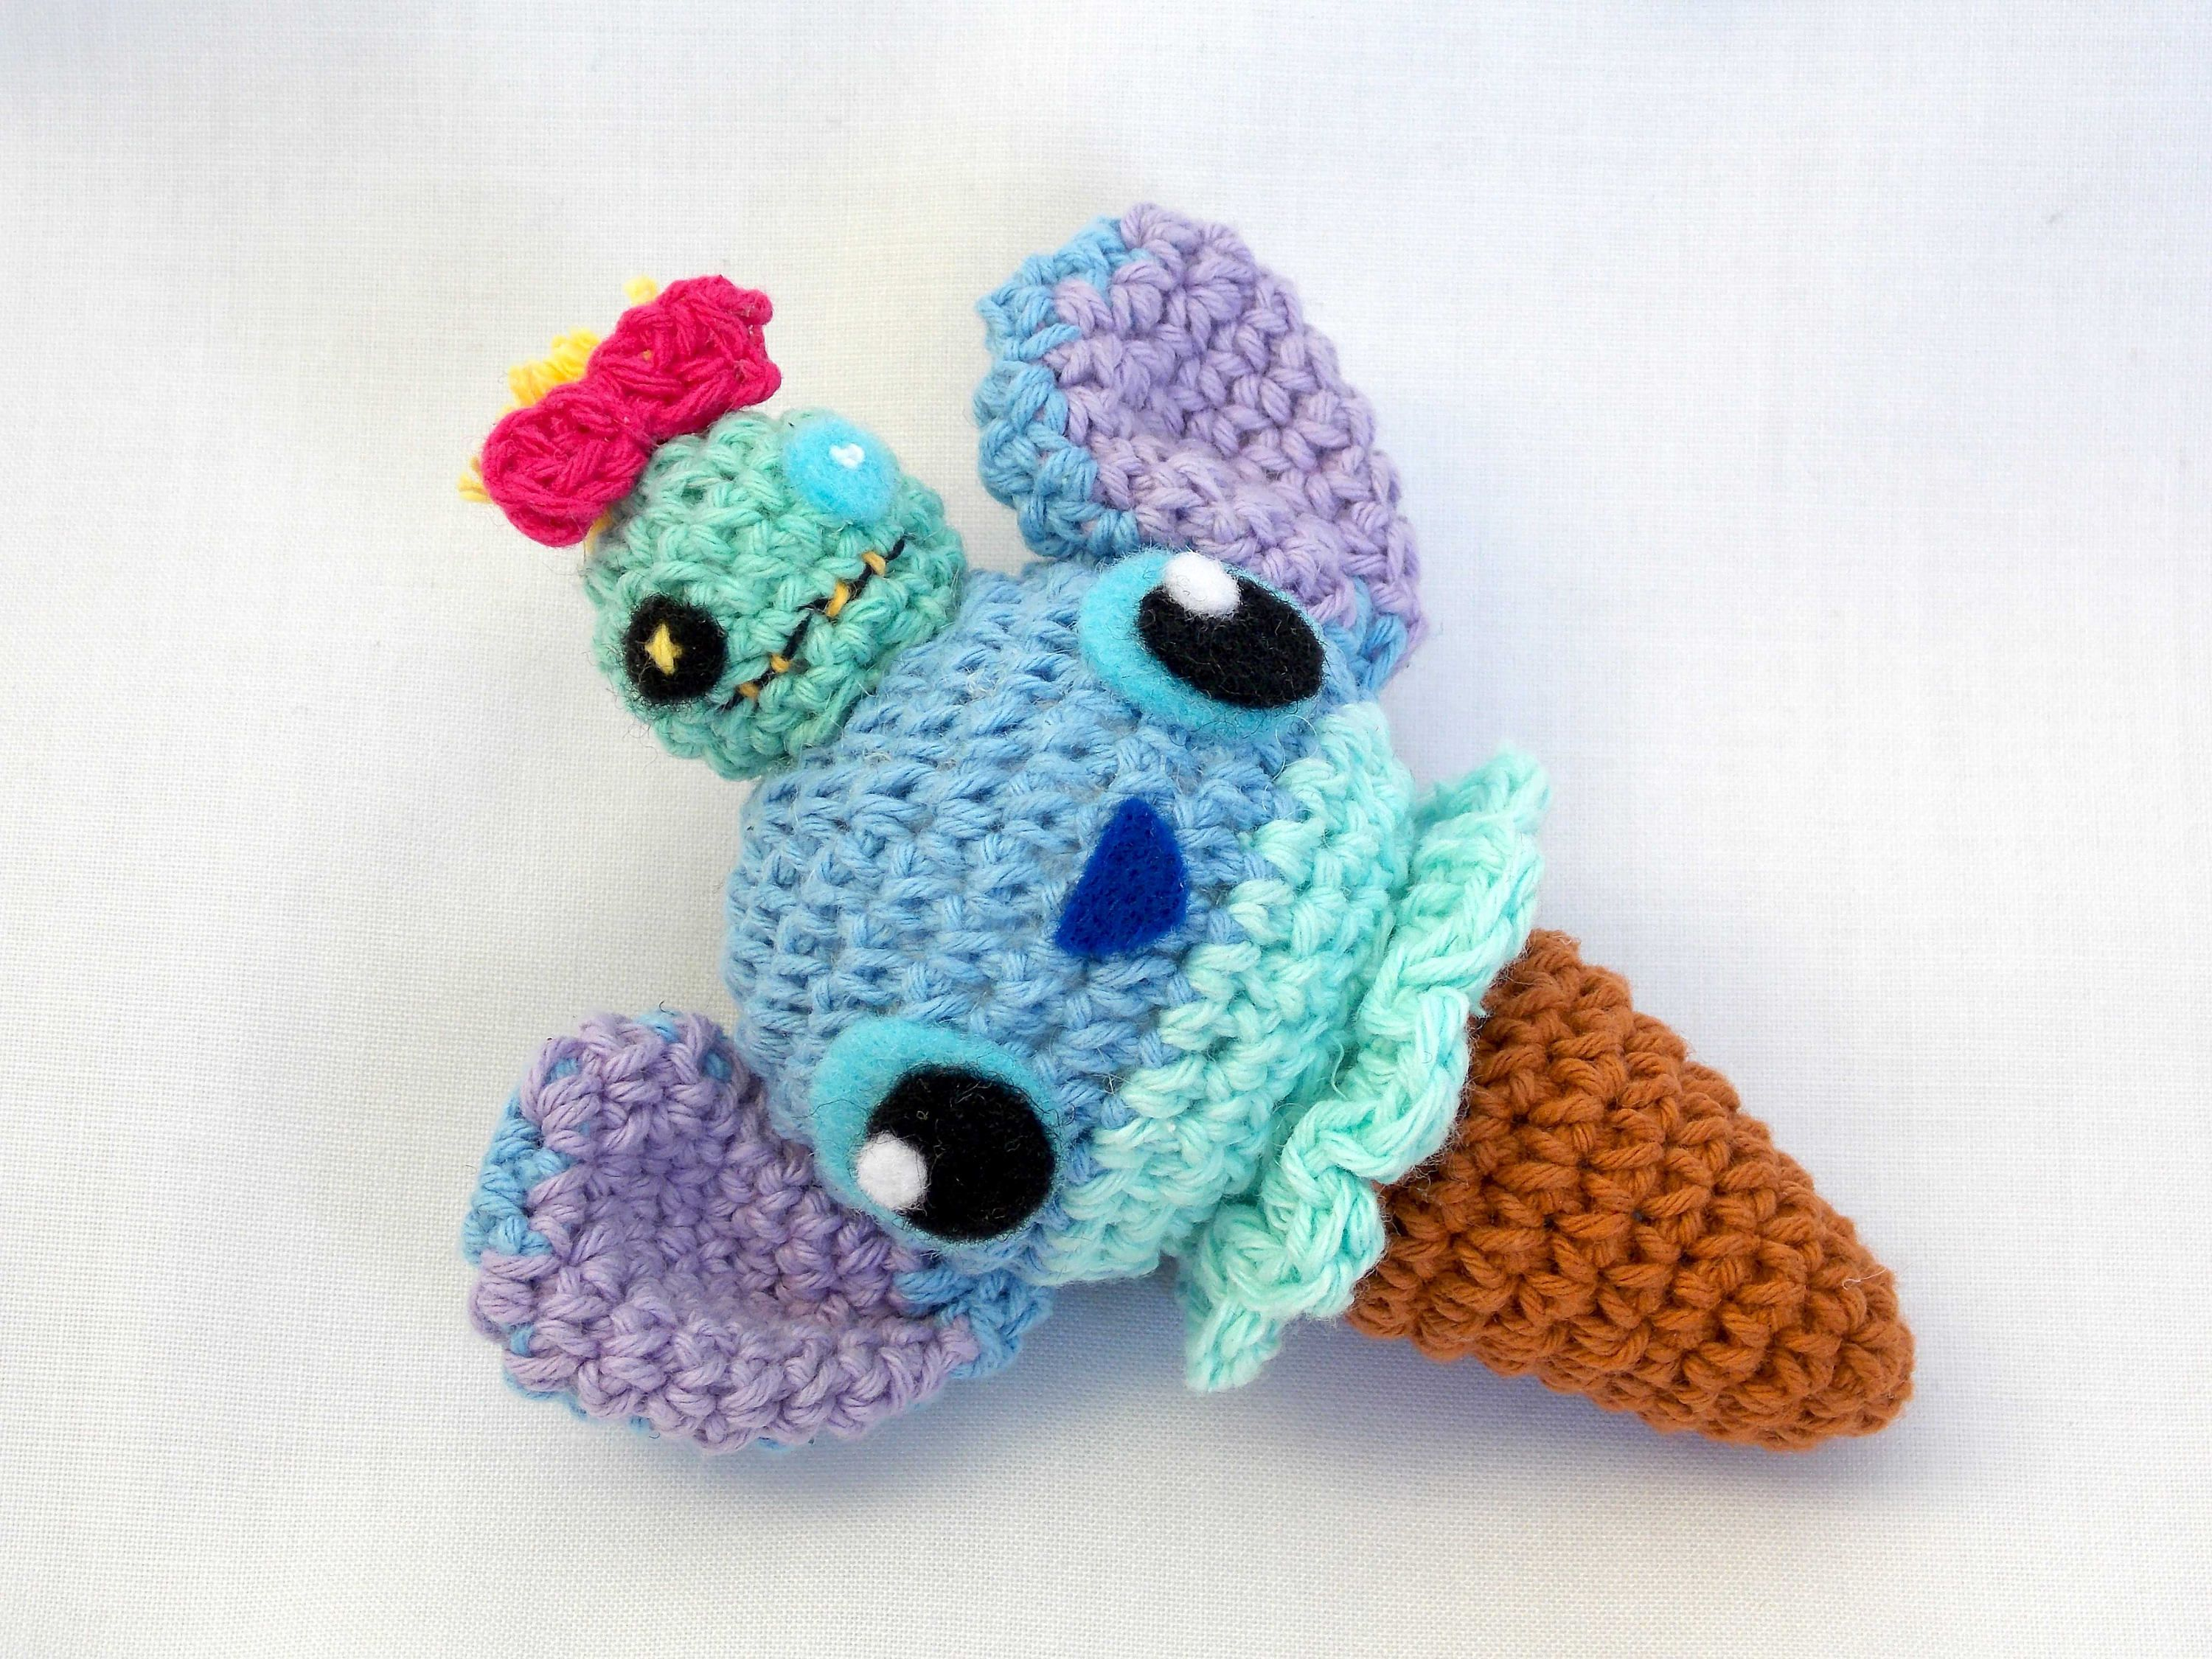 Amigurumi Crochet Keychain : Stitch and scrump ice cone plush stitch and scrump amigurumi